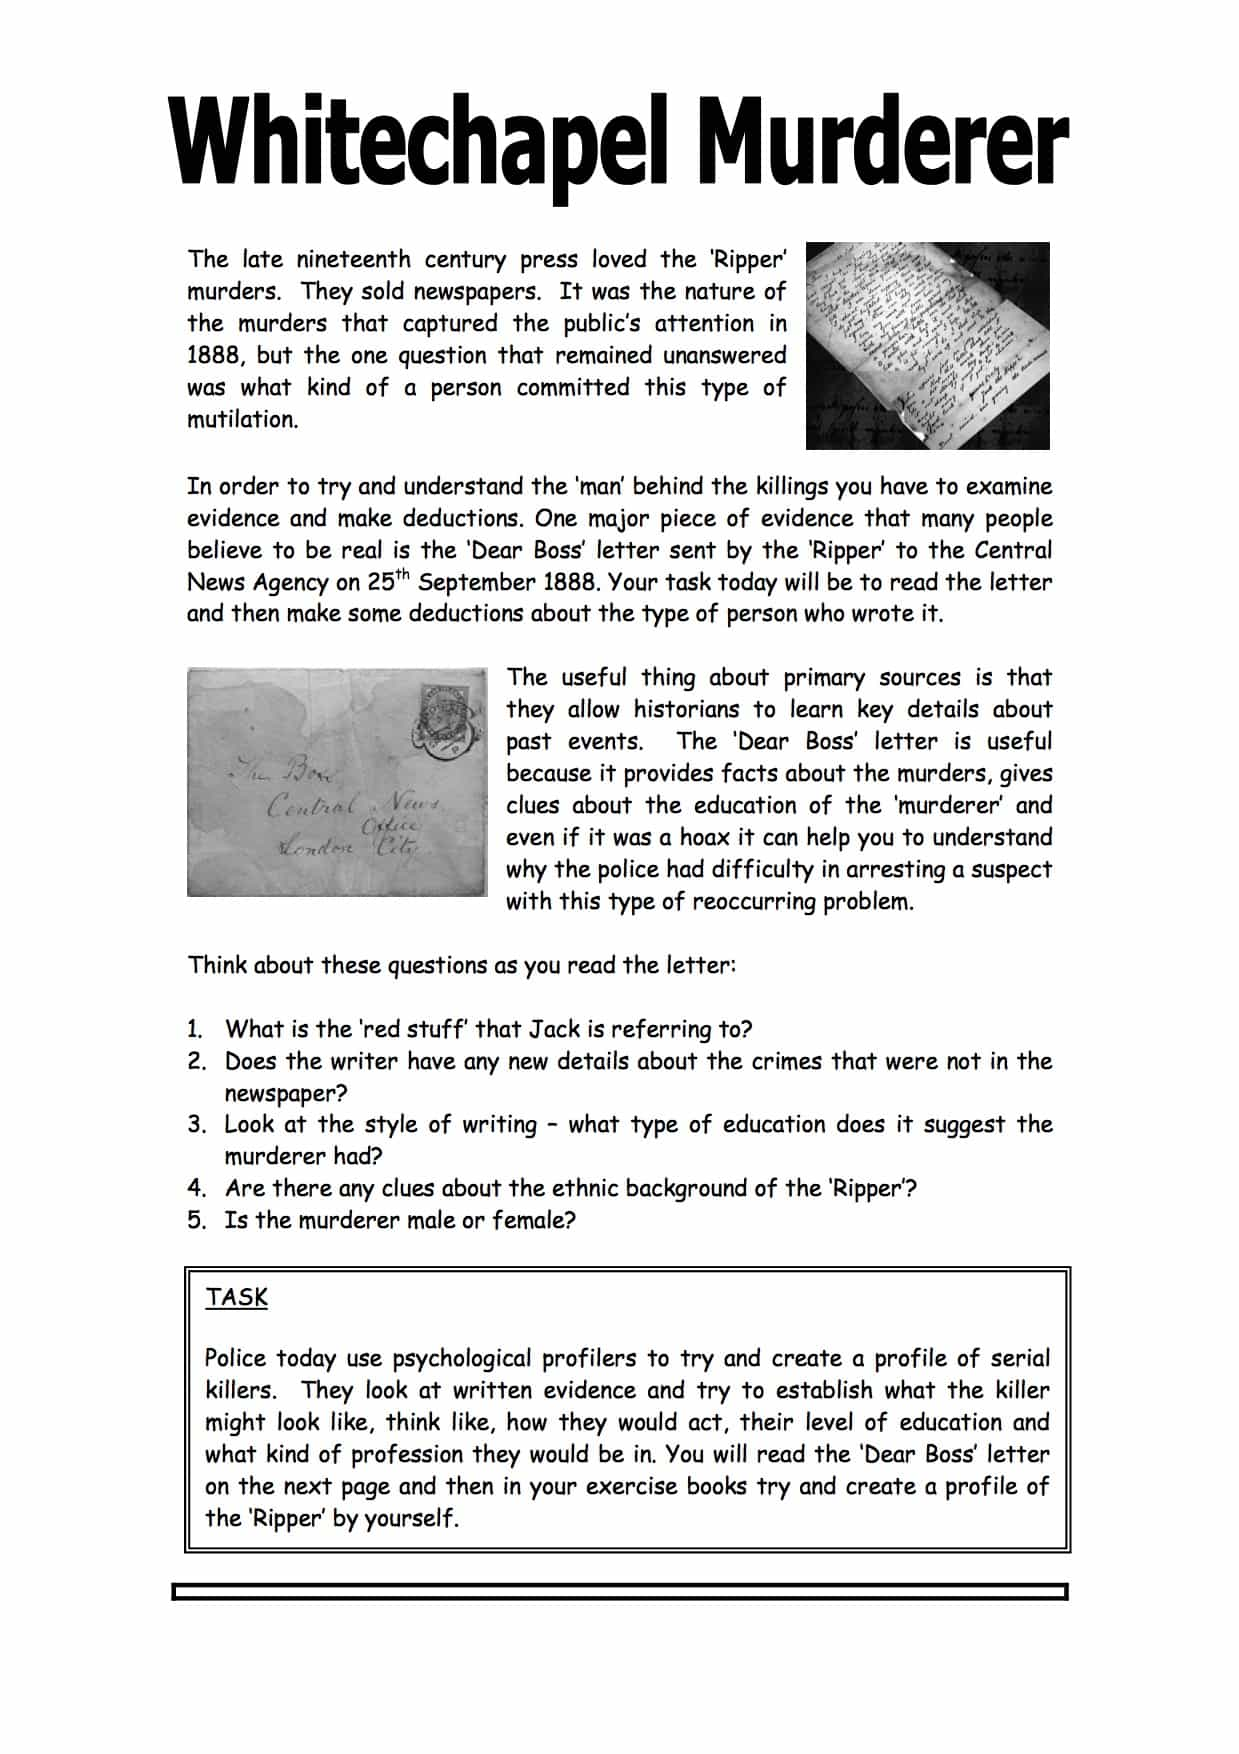 Whitechapel Murder Character Profile Activity Worksheet